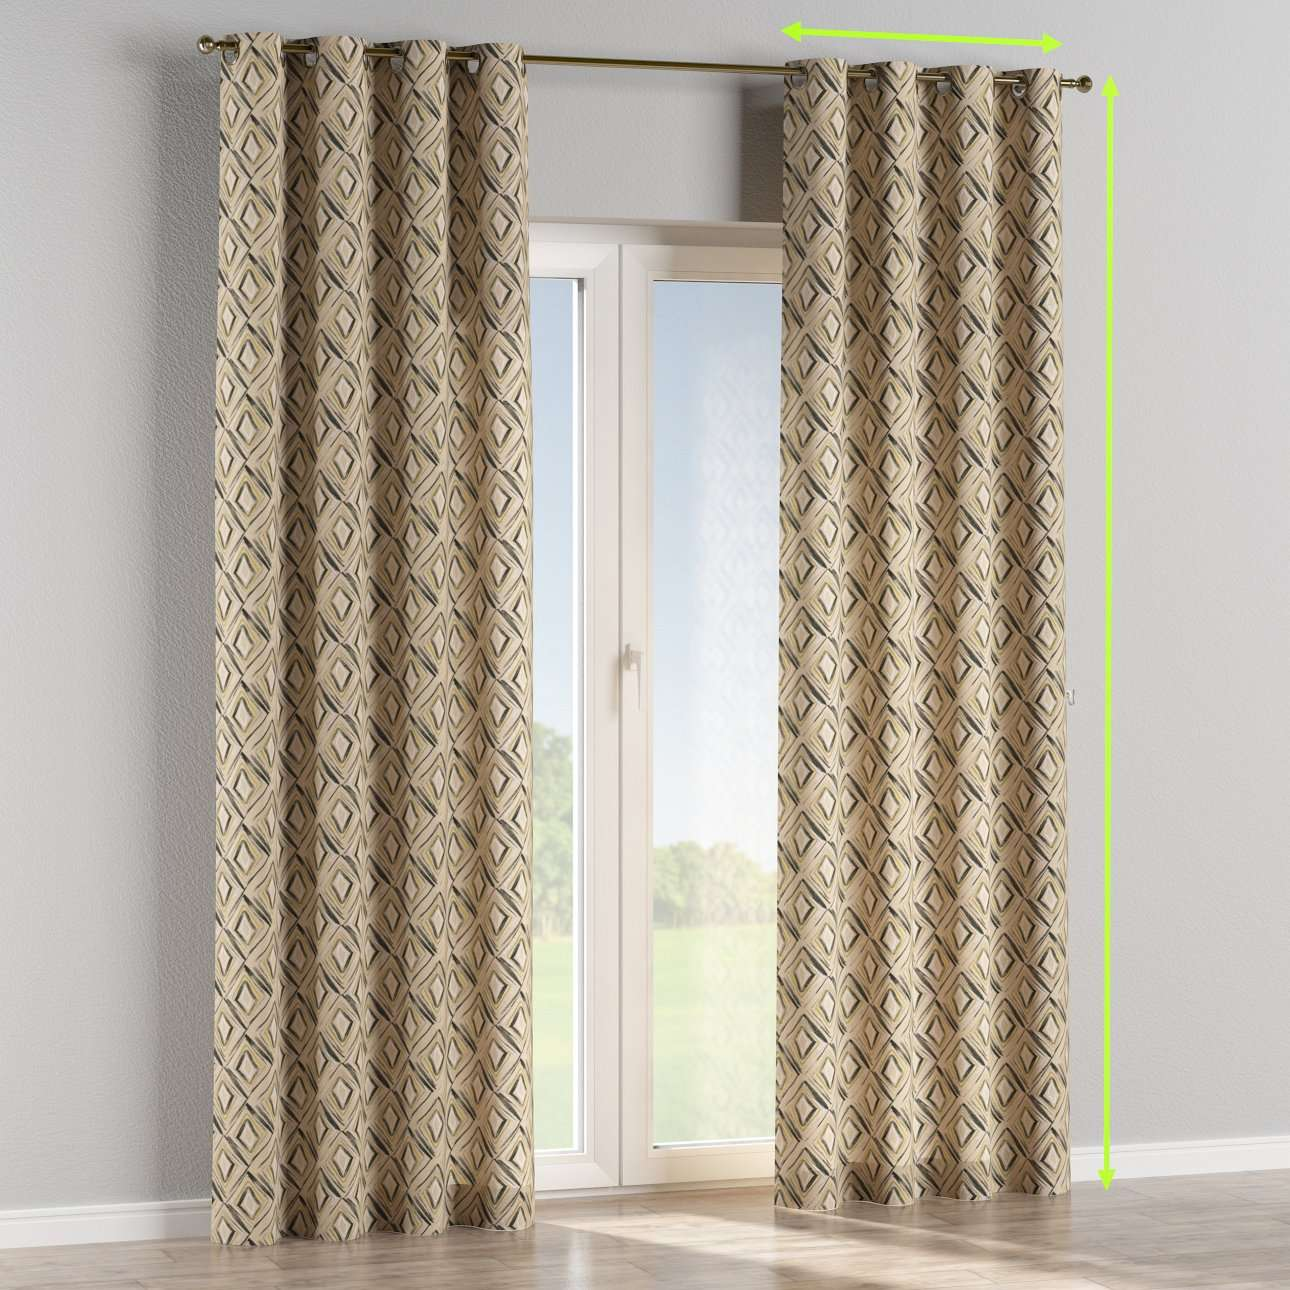 Eyelet curtains in collection Londres, fabric: 140-46